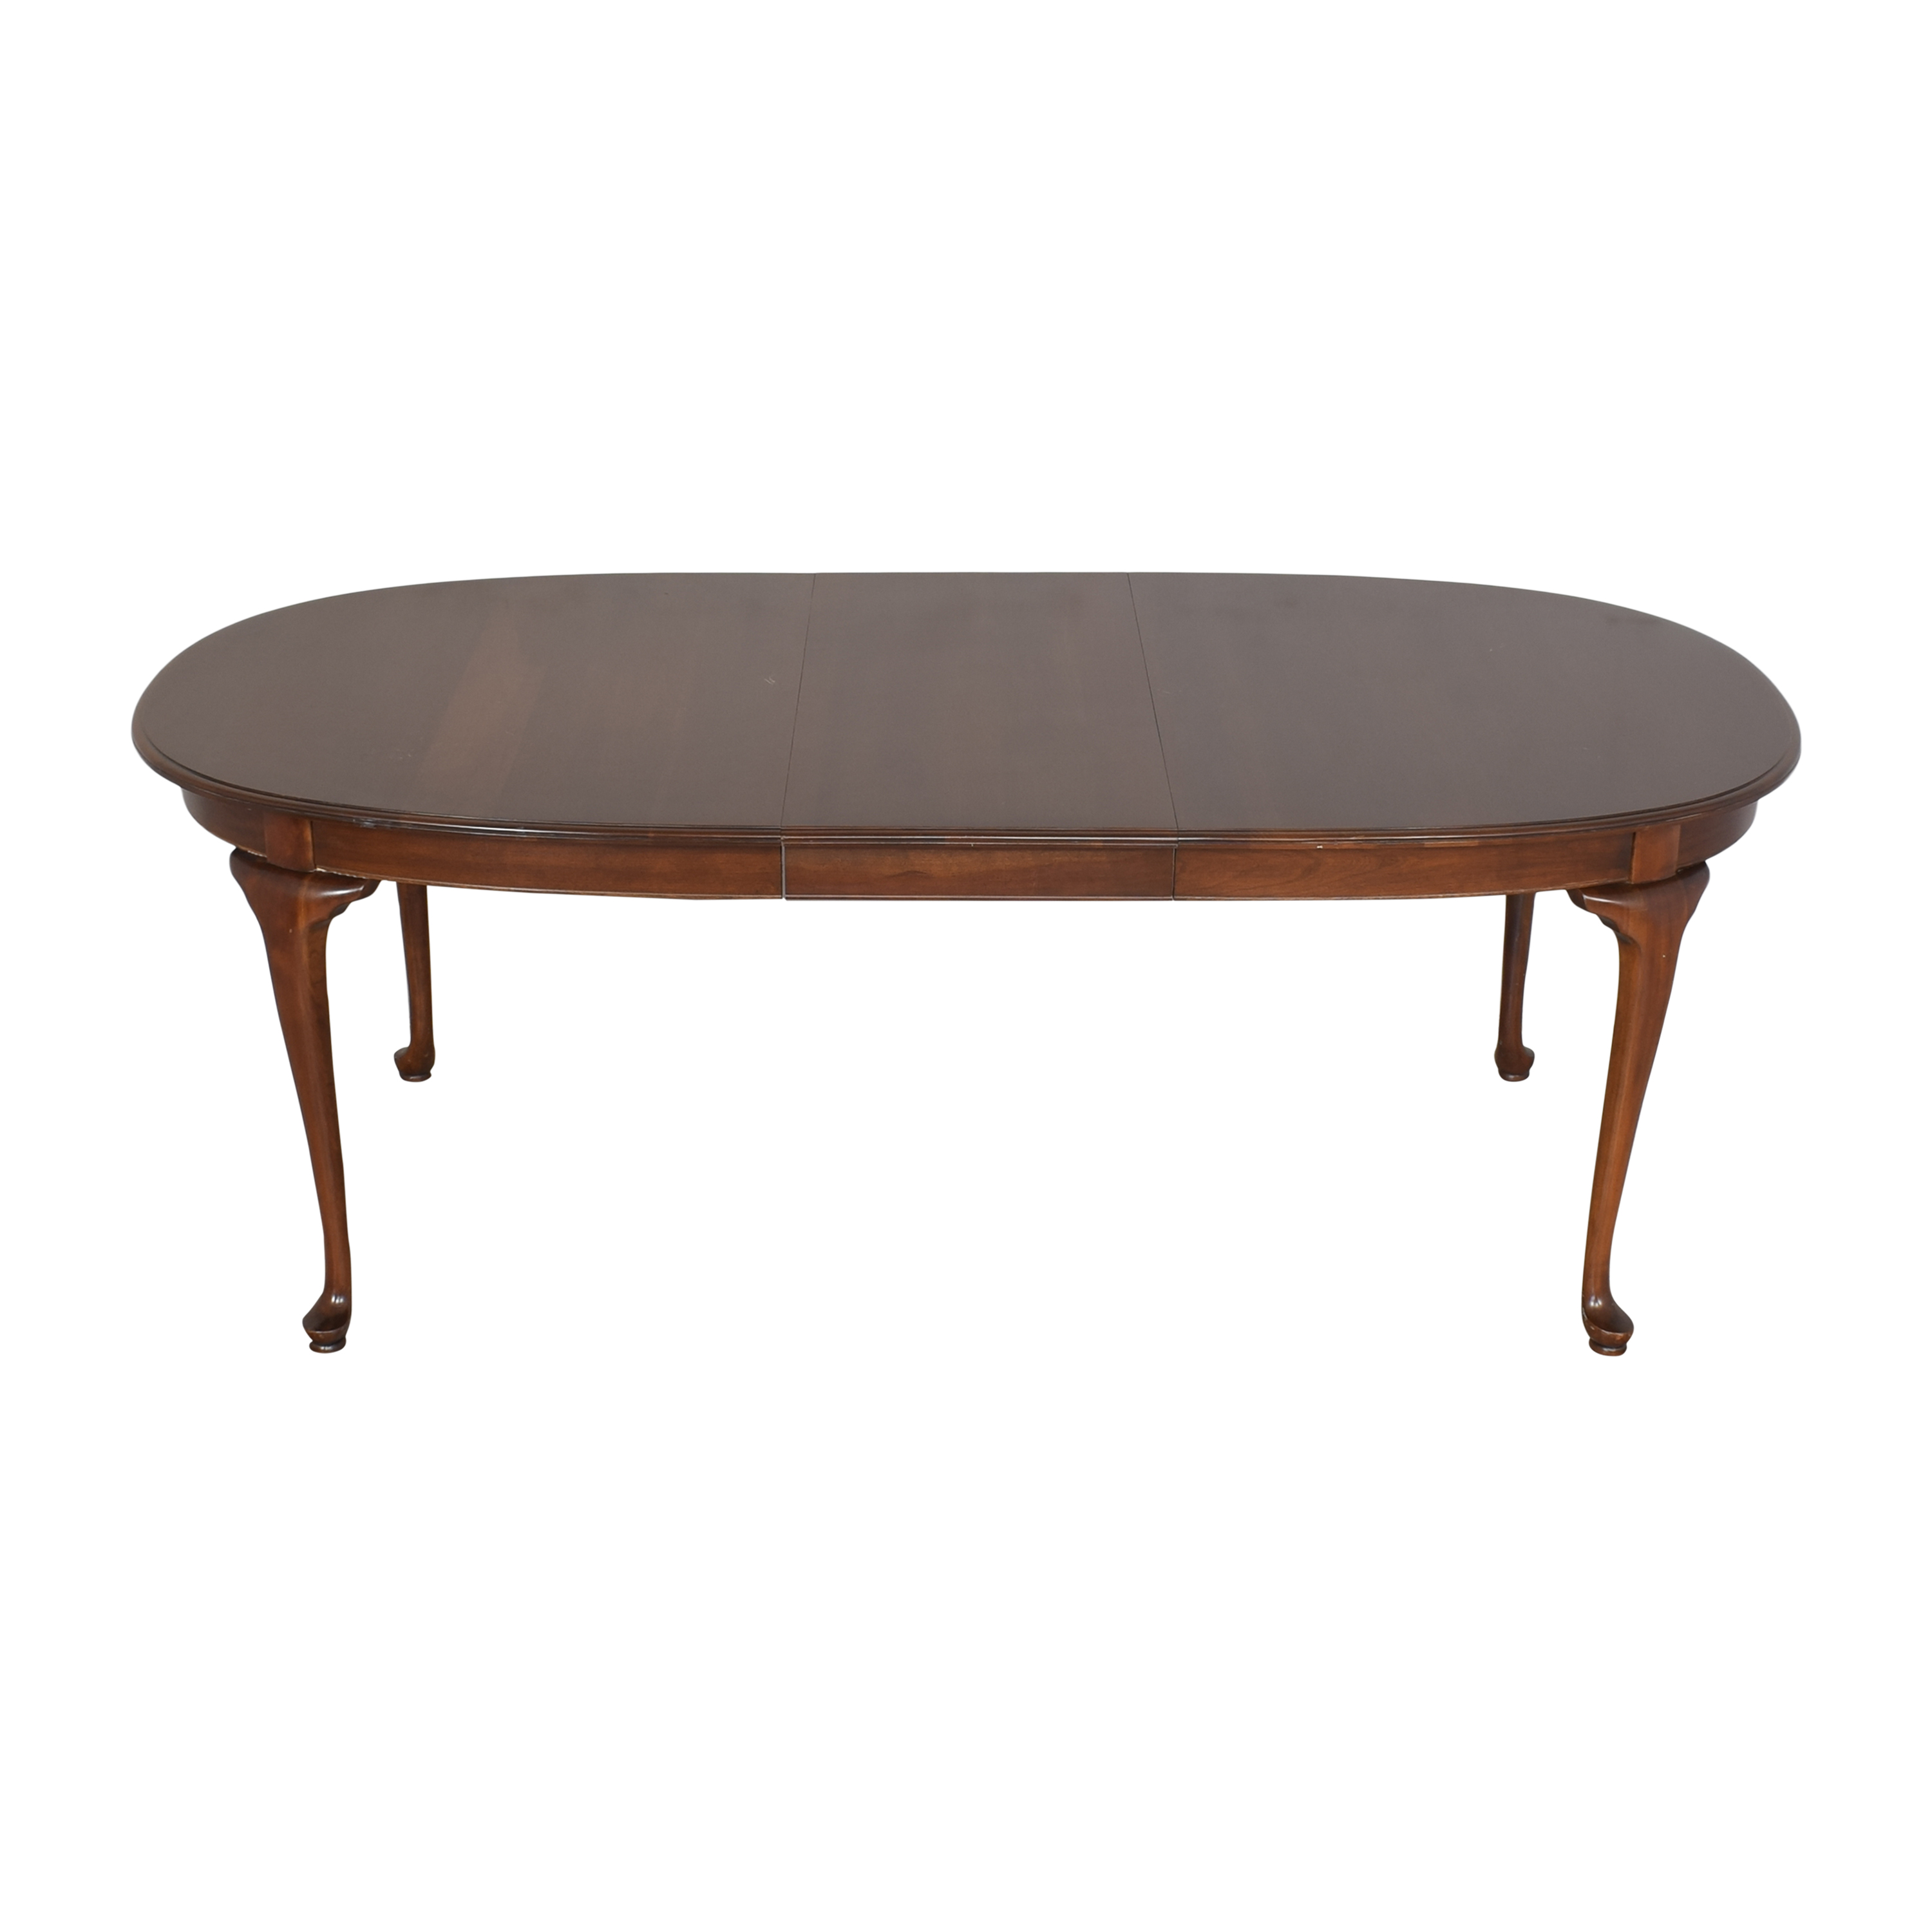 Ethan Allen Ethan Allen Extendable Oval Dining Table used